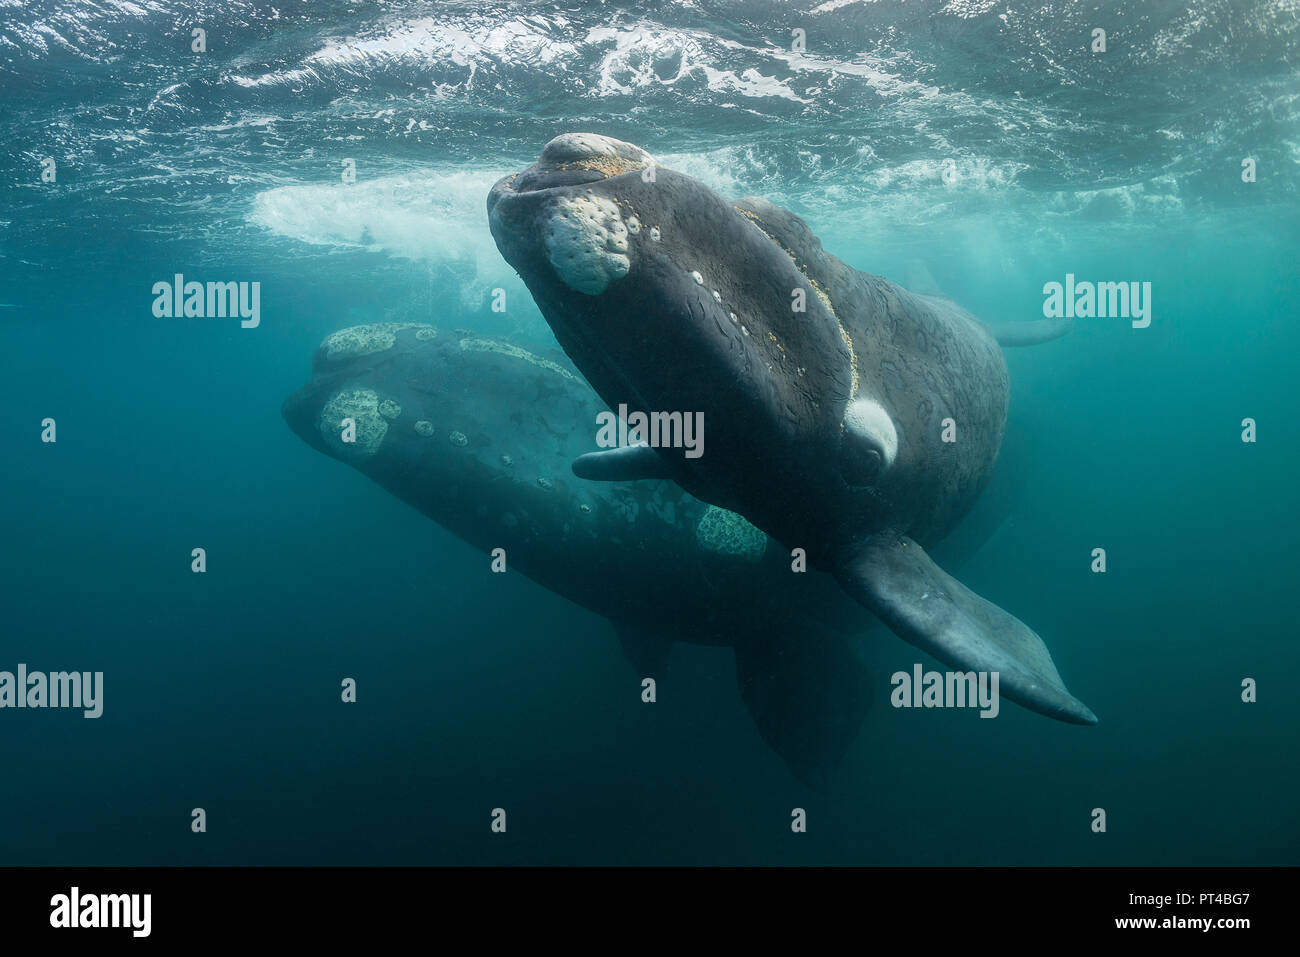 Southern right whale and her calf, Valdes Peninsula. - Stock Image